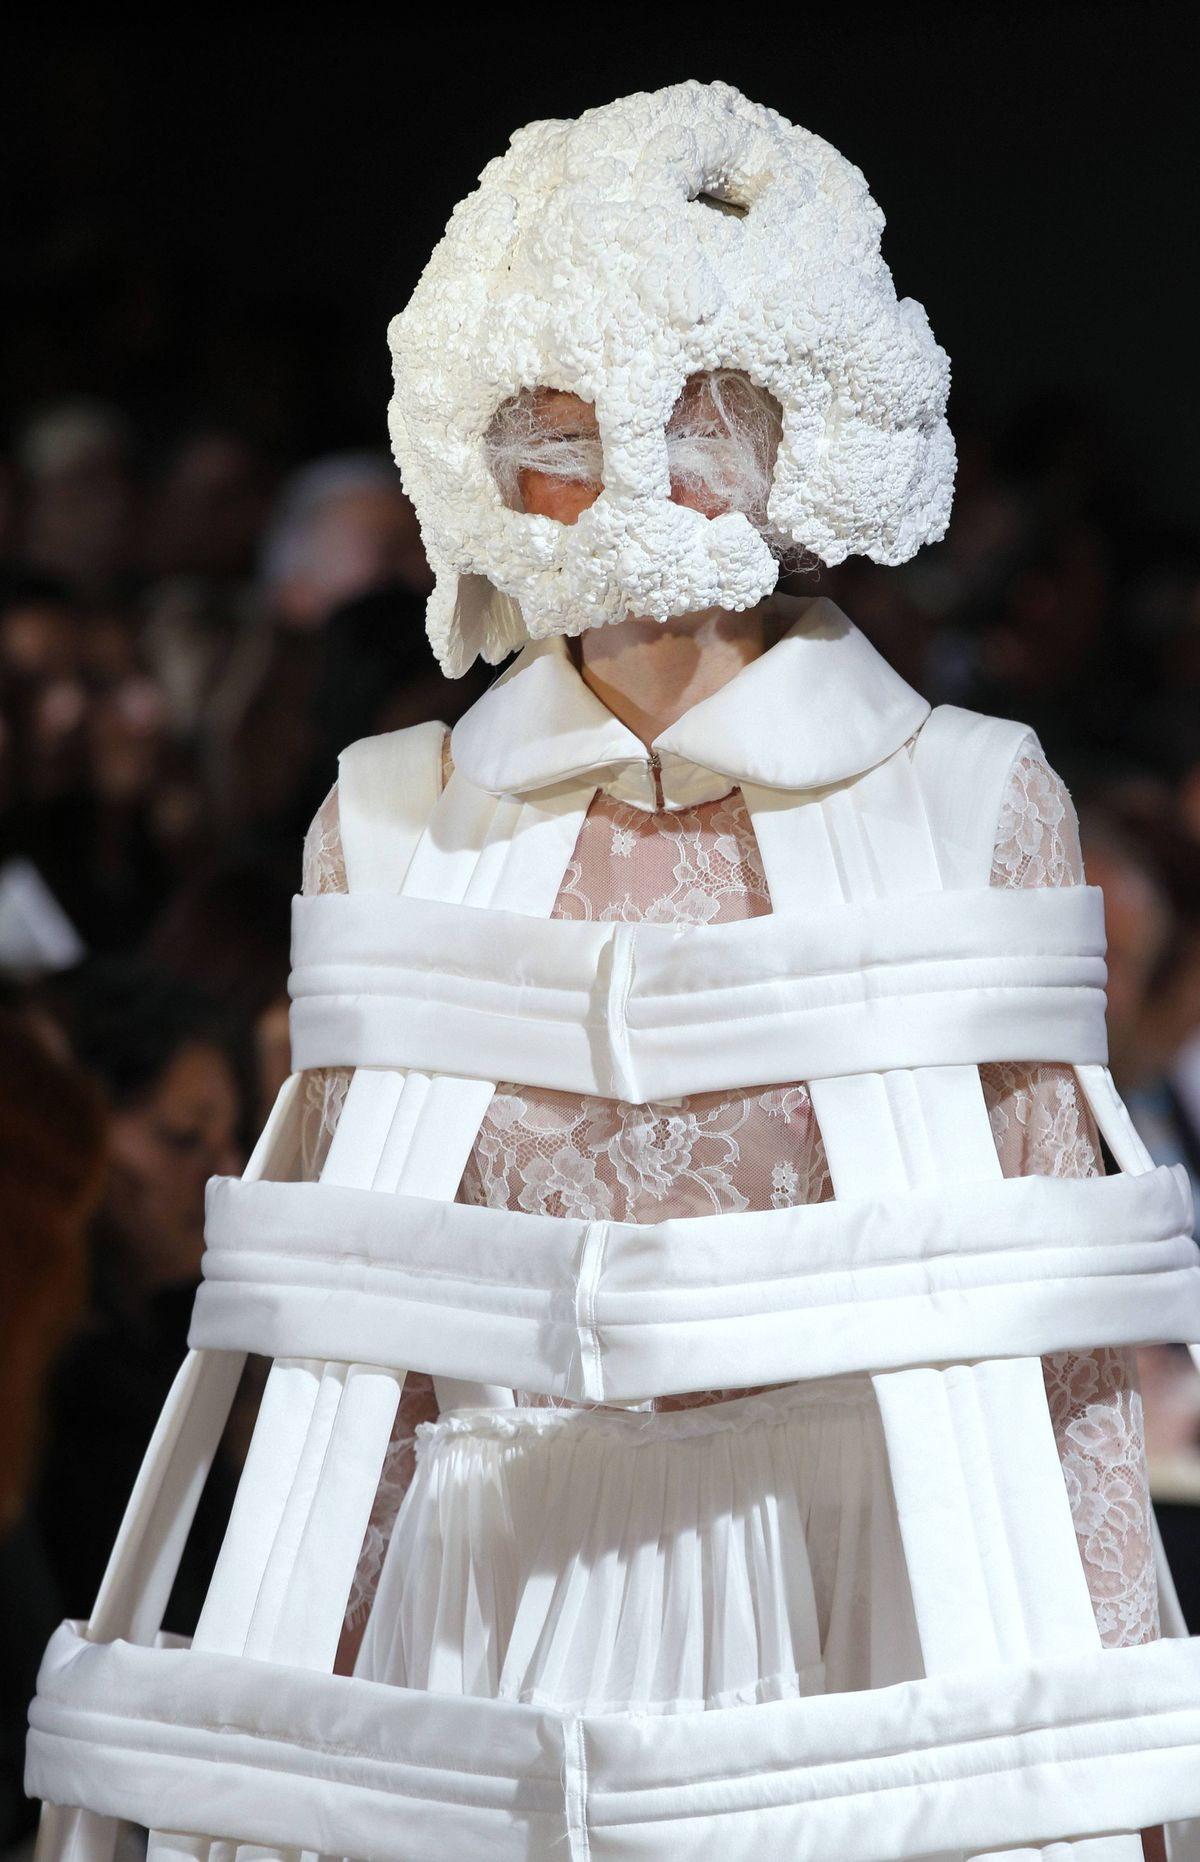 Comme des Garçons Spring/Summer 2012 ready-to-wear collection Titled White Drama, designer Rei Kawakubo took carte blanche to new levels of wow with her achromatic collection.